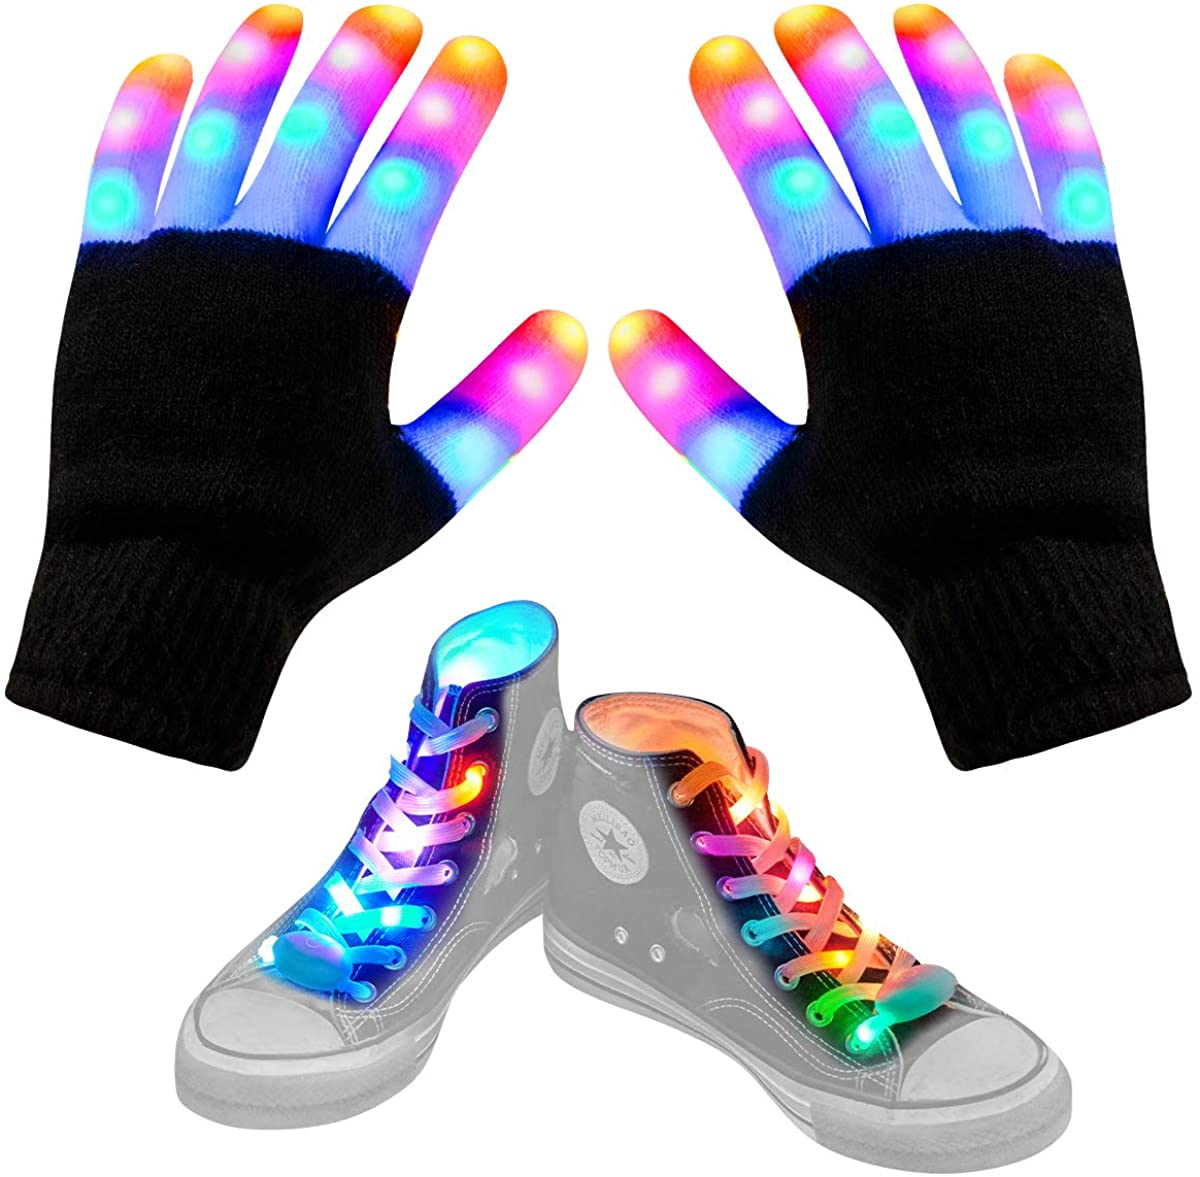 Aywewii Led Finger Gloves, Led Gloves LED Shoelaces Set Light Up Toys for Boys Girls, Flashing Gloves for Christmas Thanksgiving Birthday Glow Halloween Costume Party: Clothing